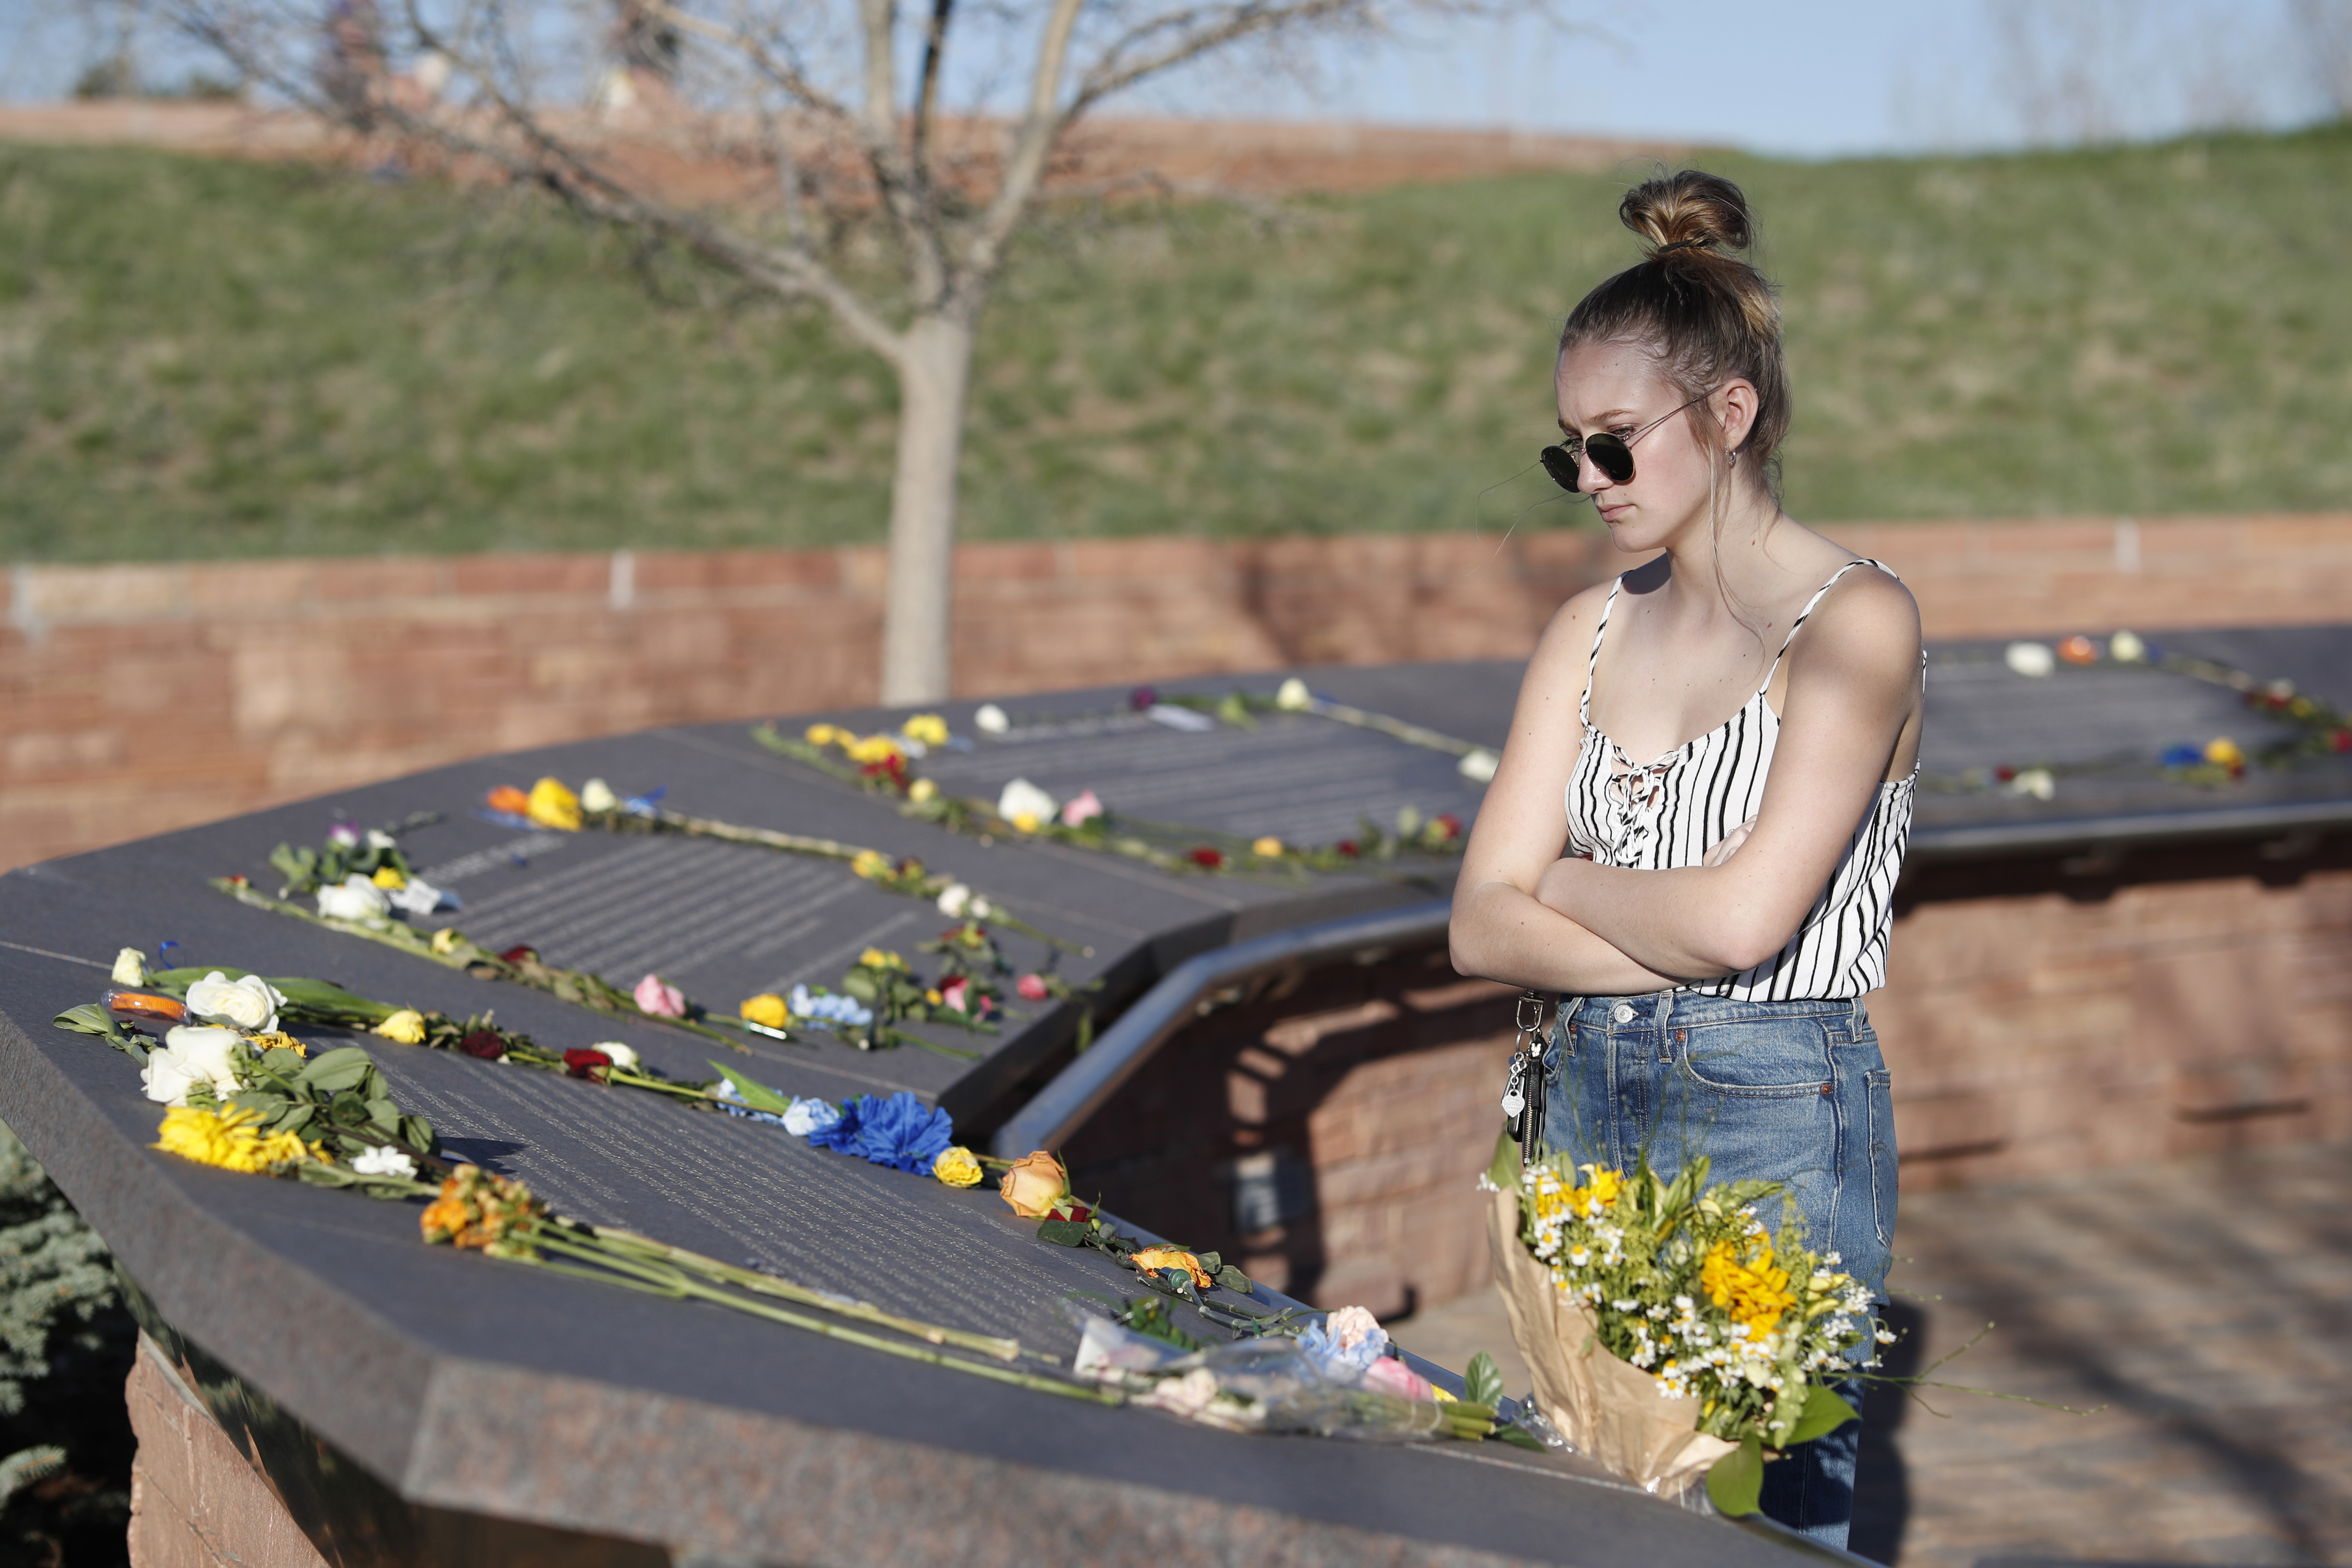 Sixteen-year-old Maren Strother of Denver looks over the plaques on April 19, 2019 for victims of the Columbine High School massacre before a vigil marking the 20th anniversary of the shooting in Littleton, Colo.